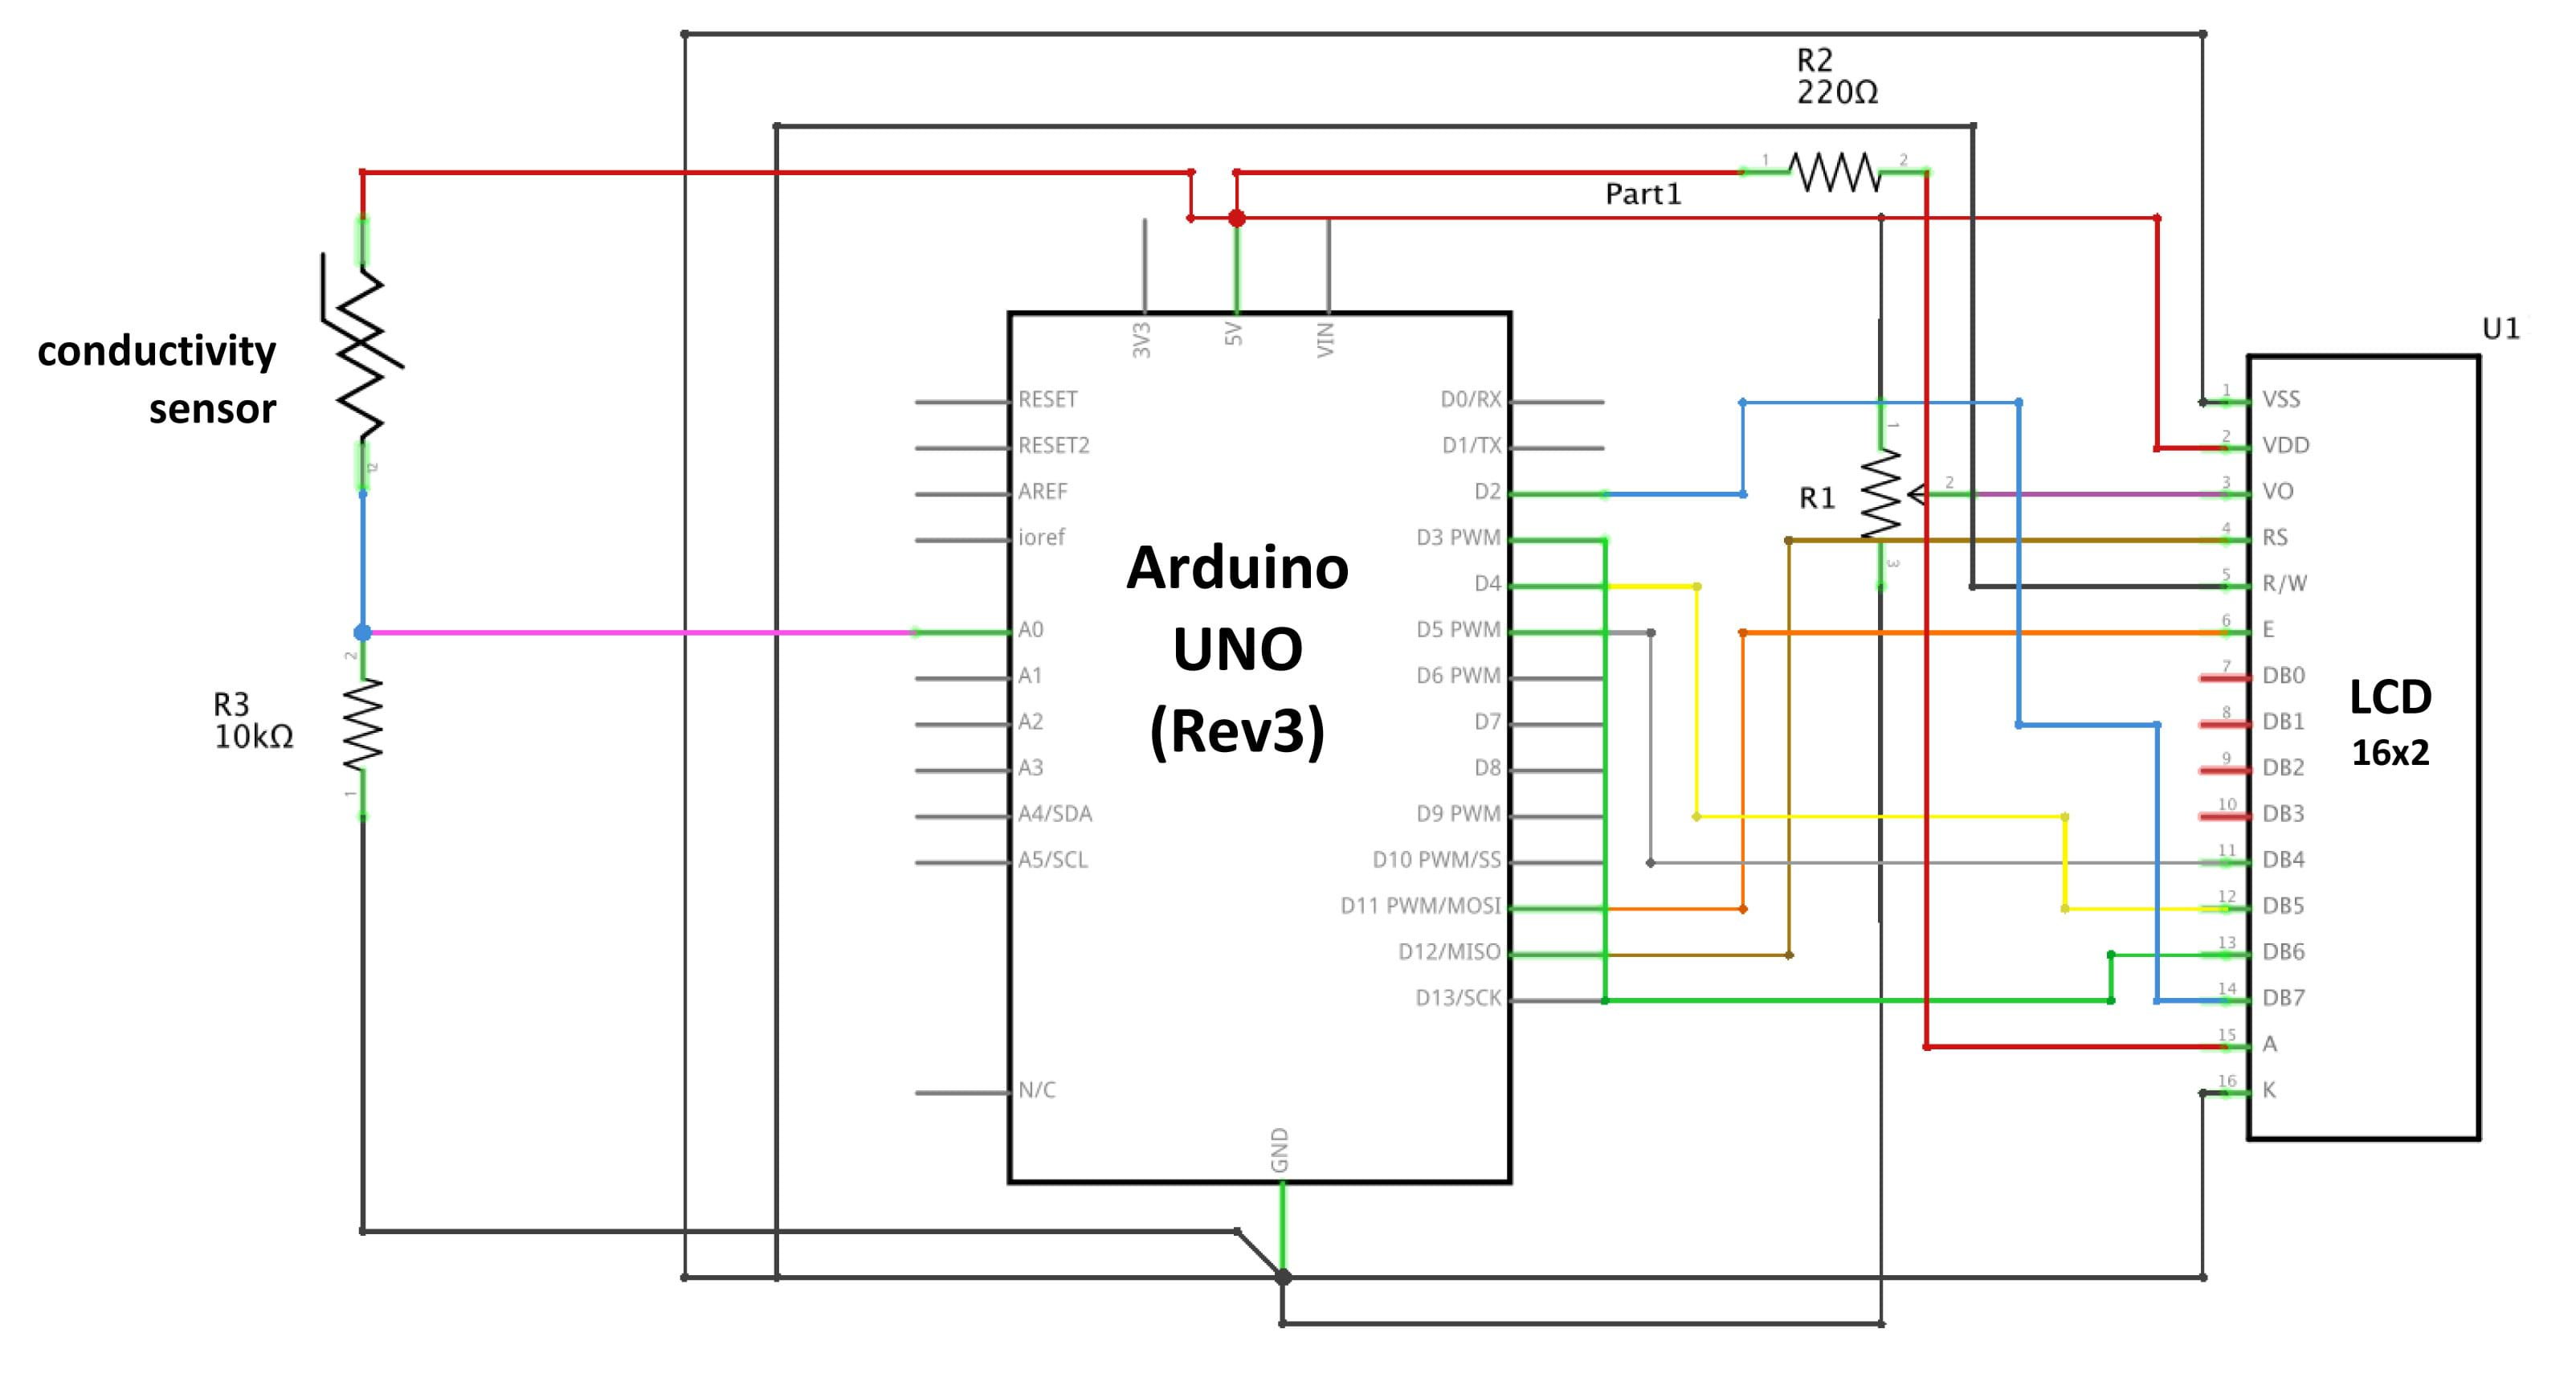 Fabulous Circuit Diagram Maker Arduino Wiring Library Wiring Cloud Hisonuggs Outletorg